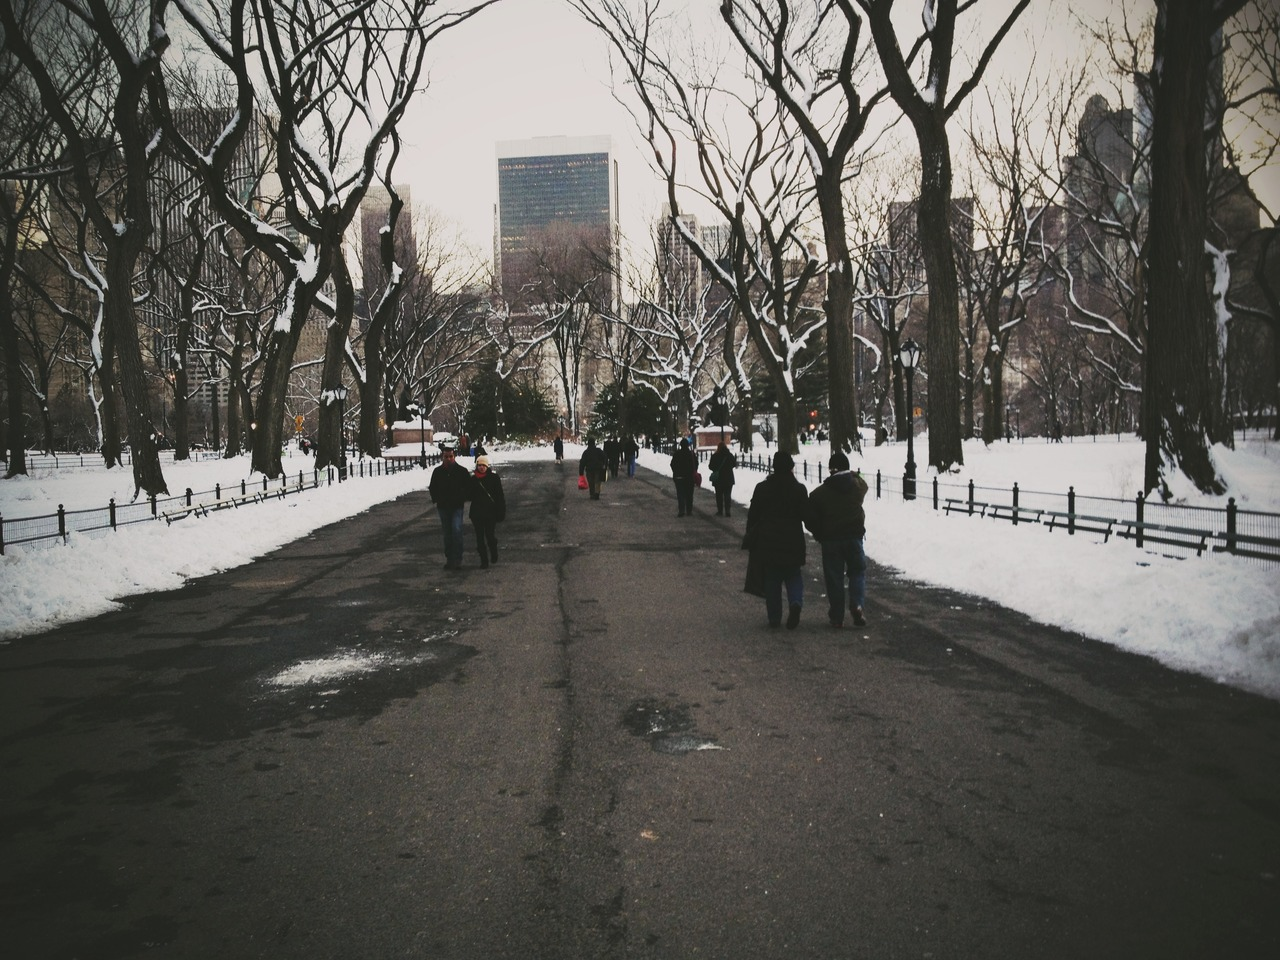 Central Park #peppersearching #pepper #photos #centralpark #snow #nyc #woods